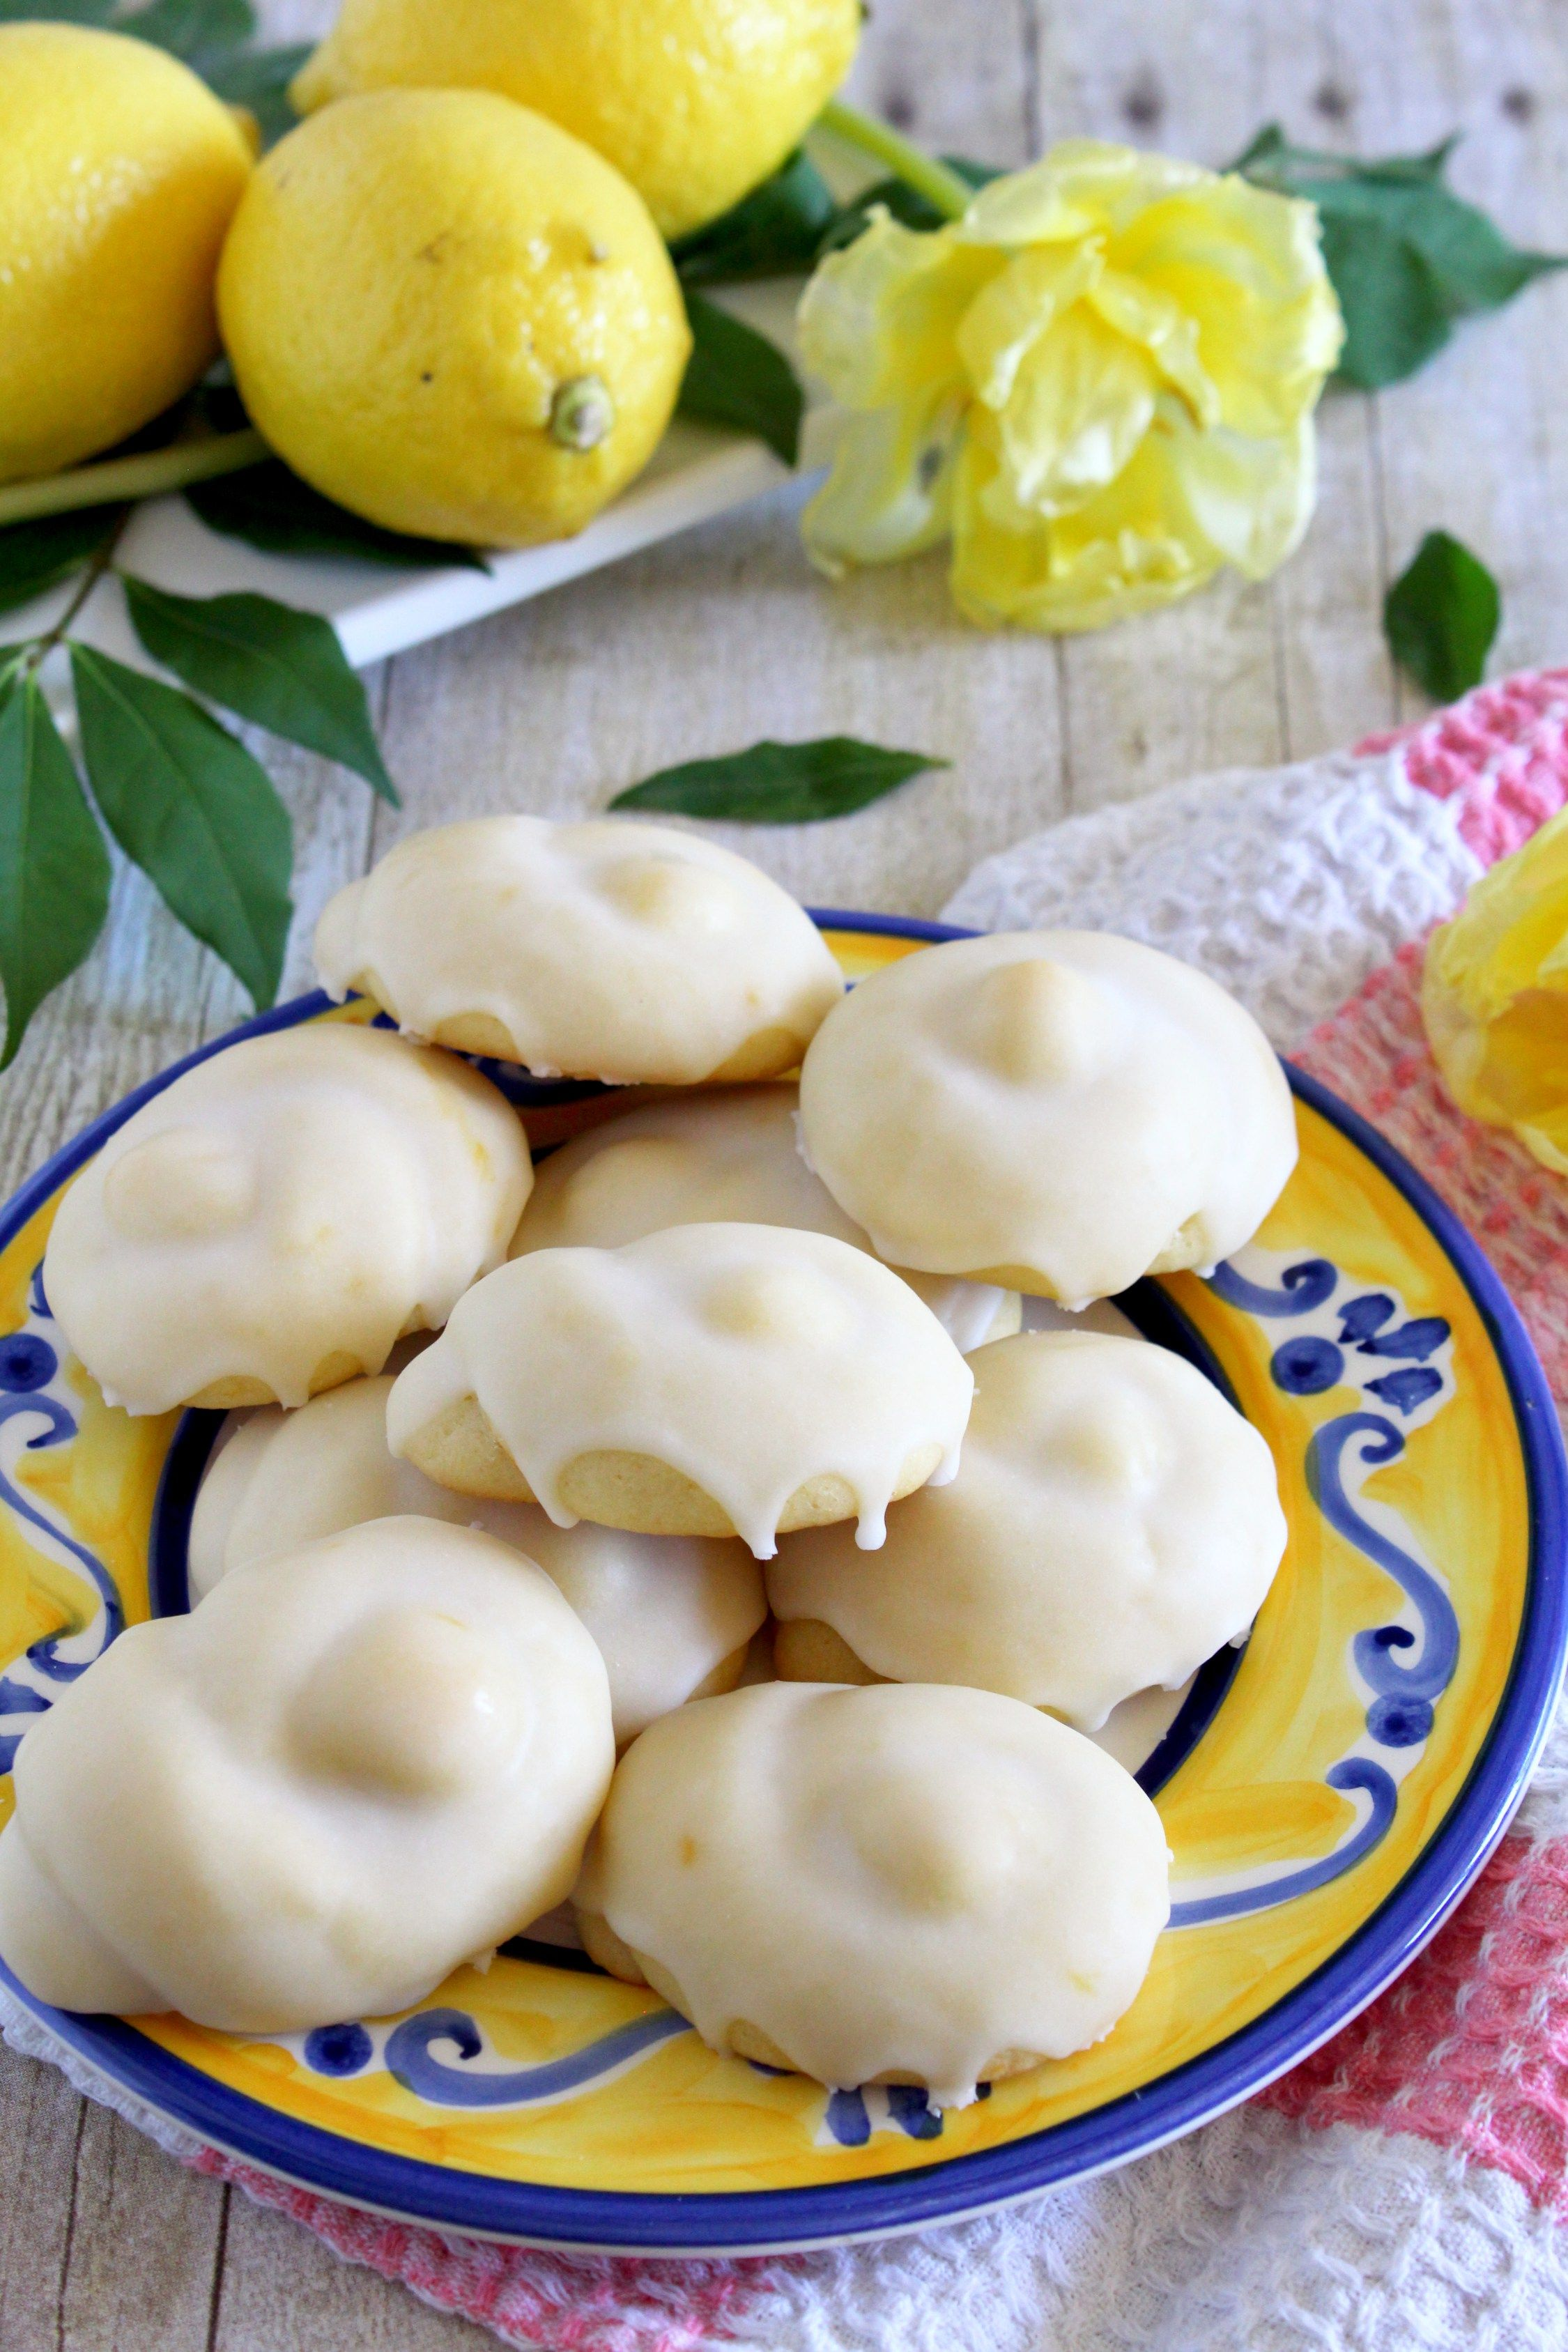 Taralluci Al Limone Are Traditional Italian Lemon Cookies Soft And Tender Topped With